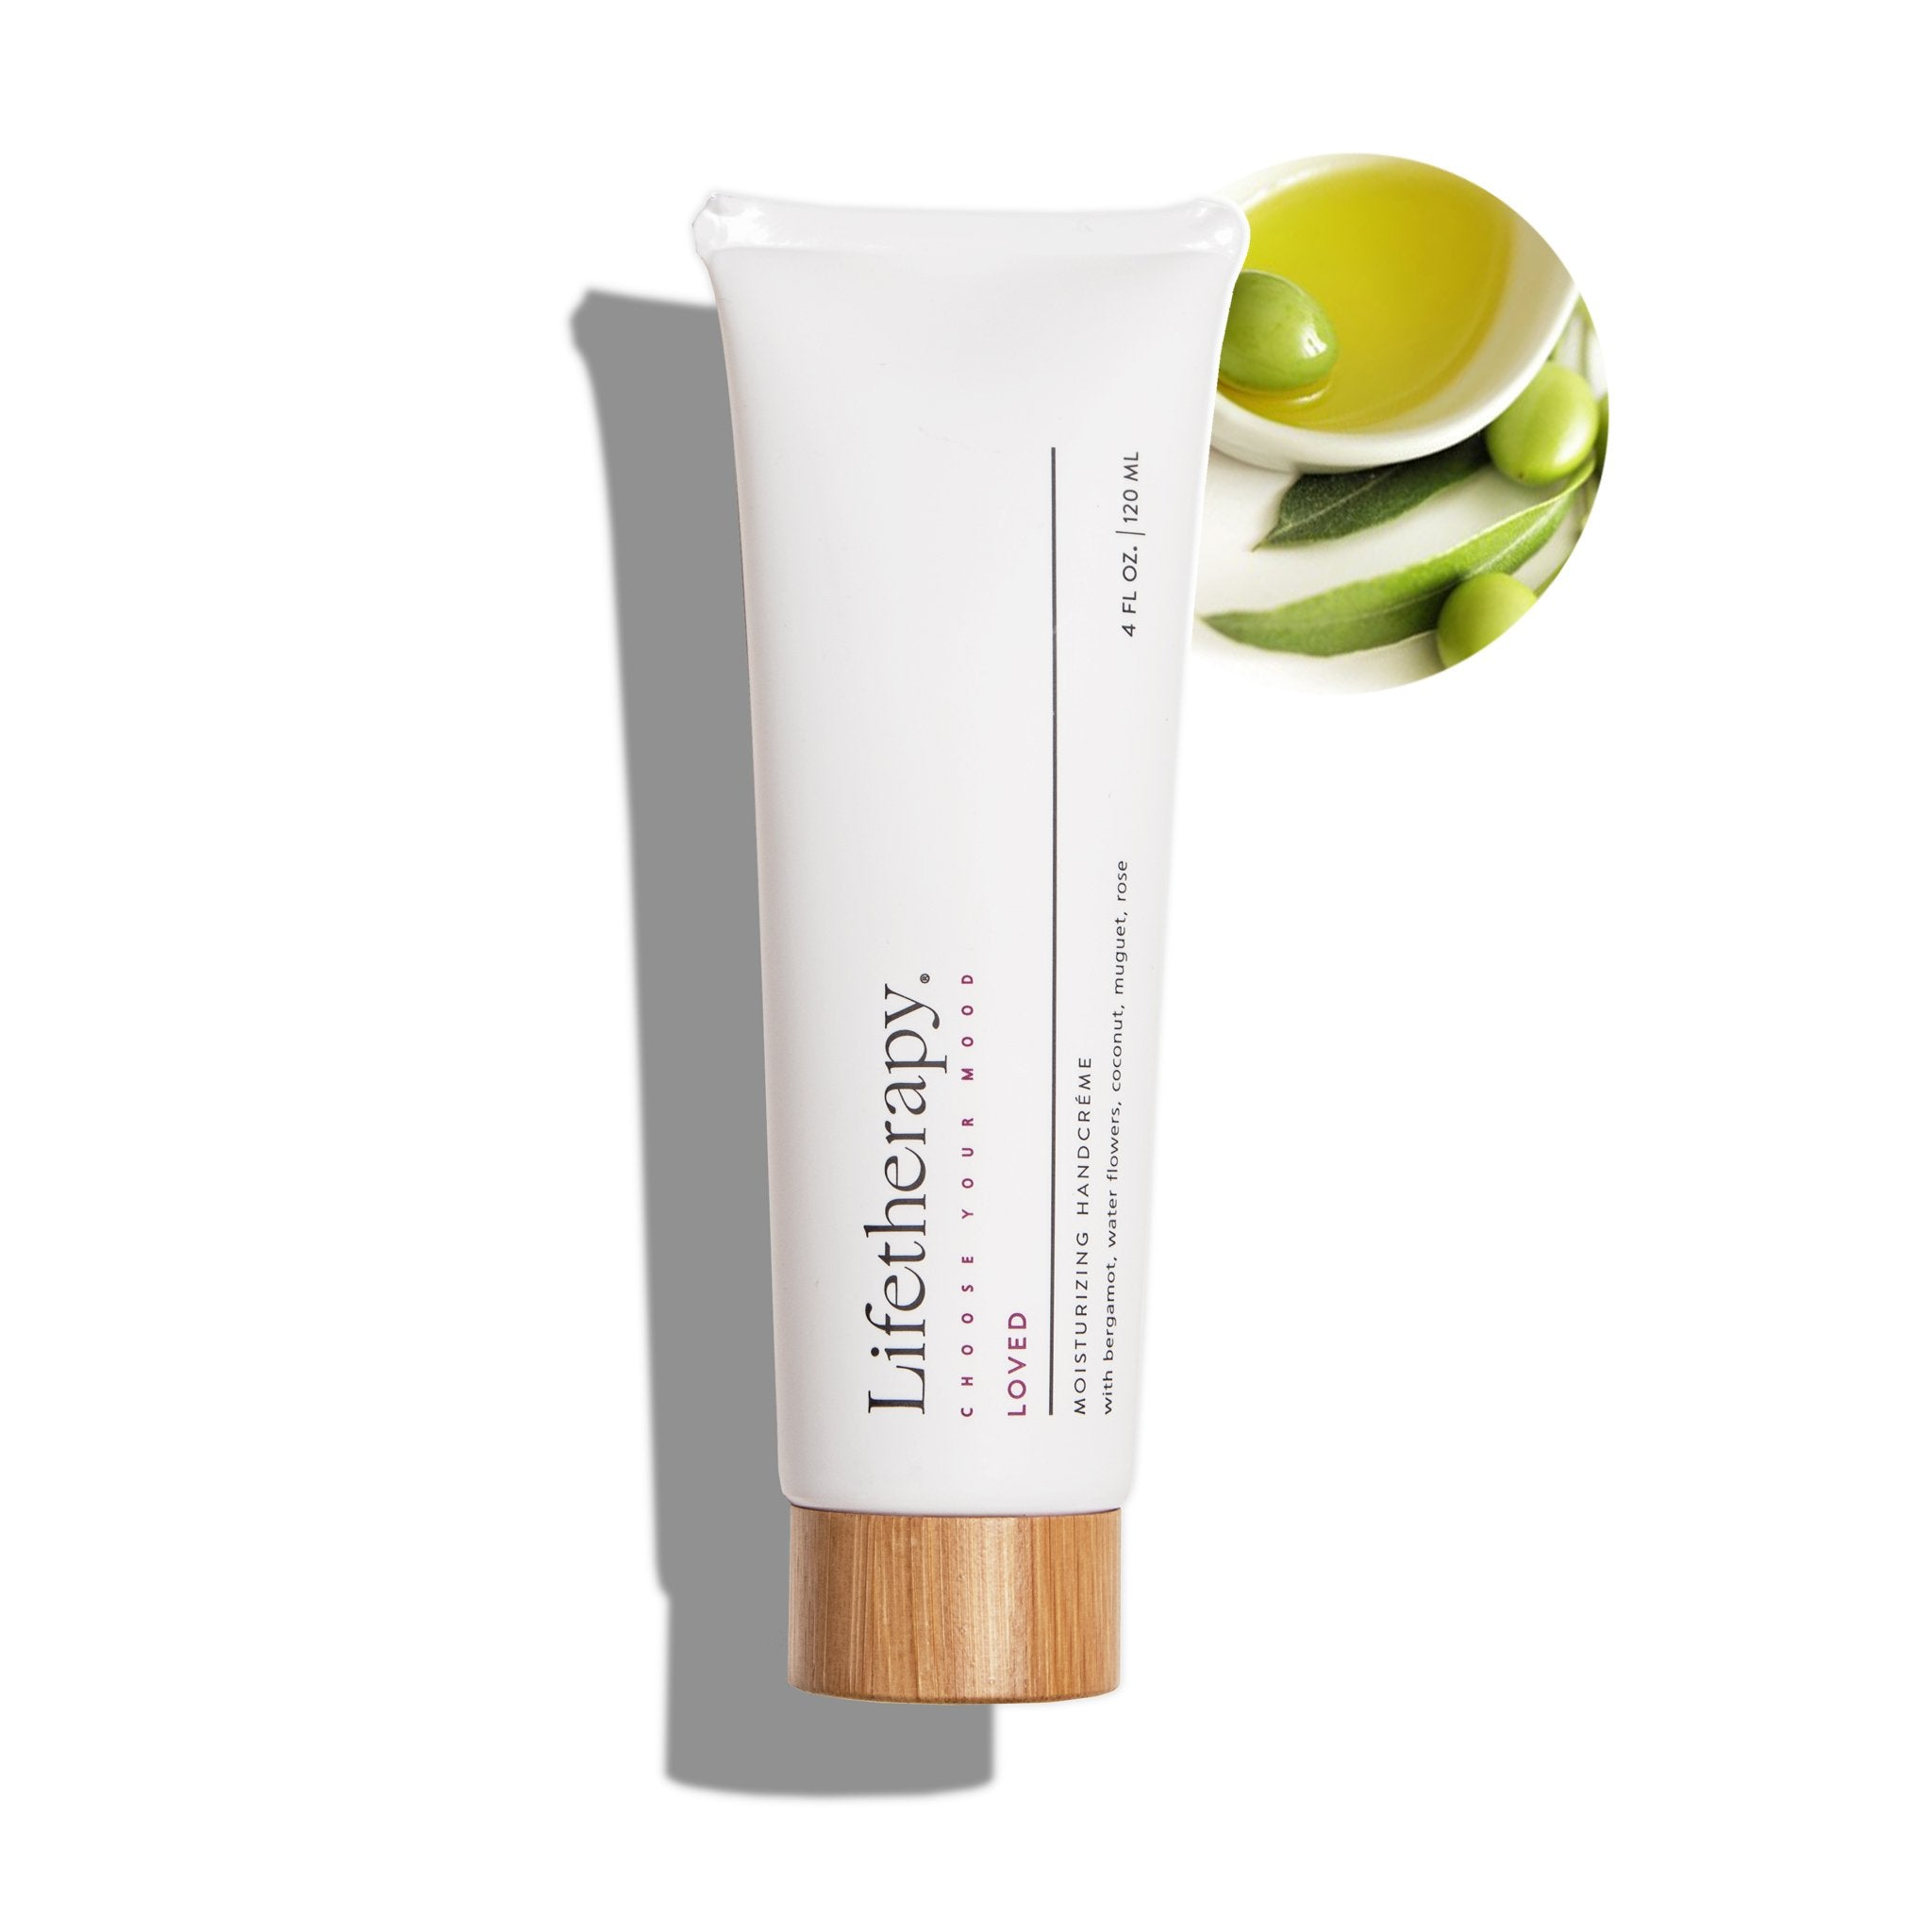 Best olive oil moisturizing handcreme by Lifetherapy